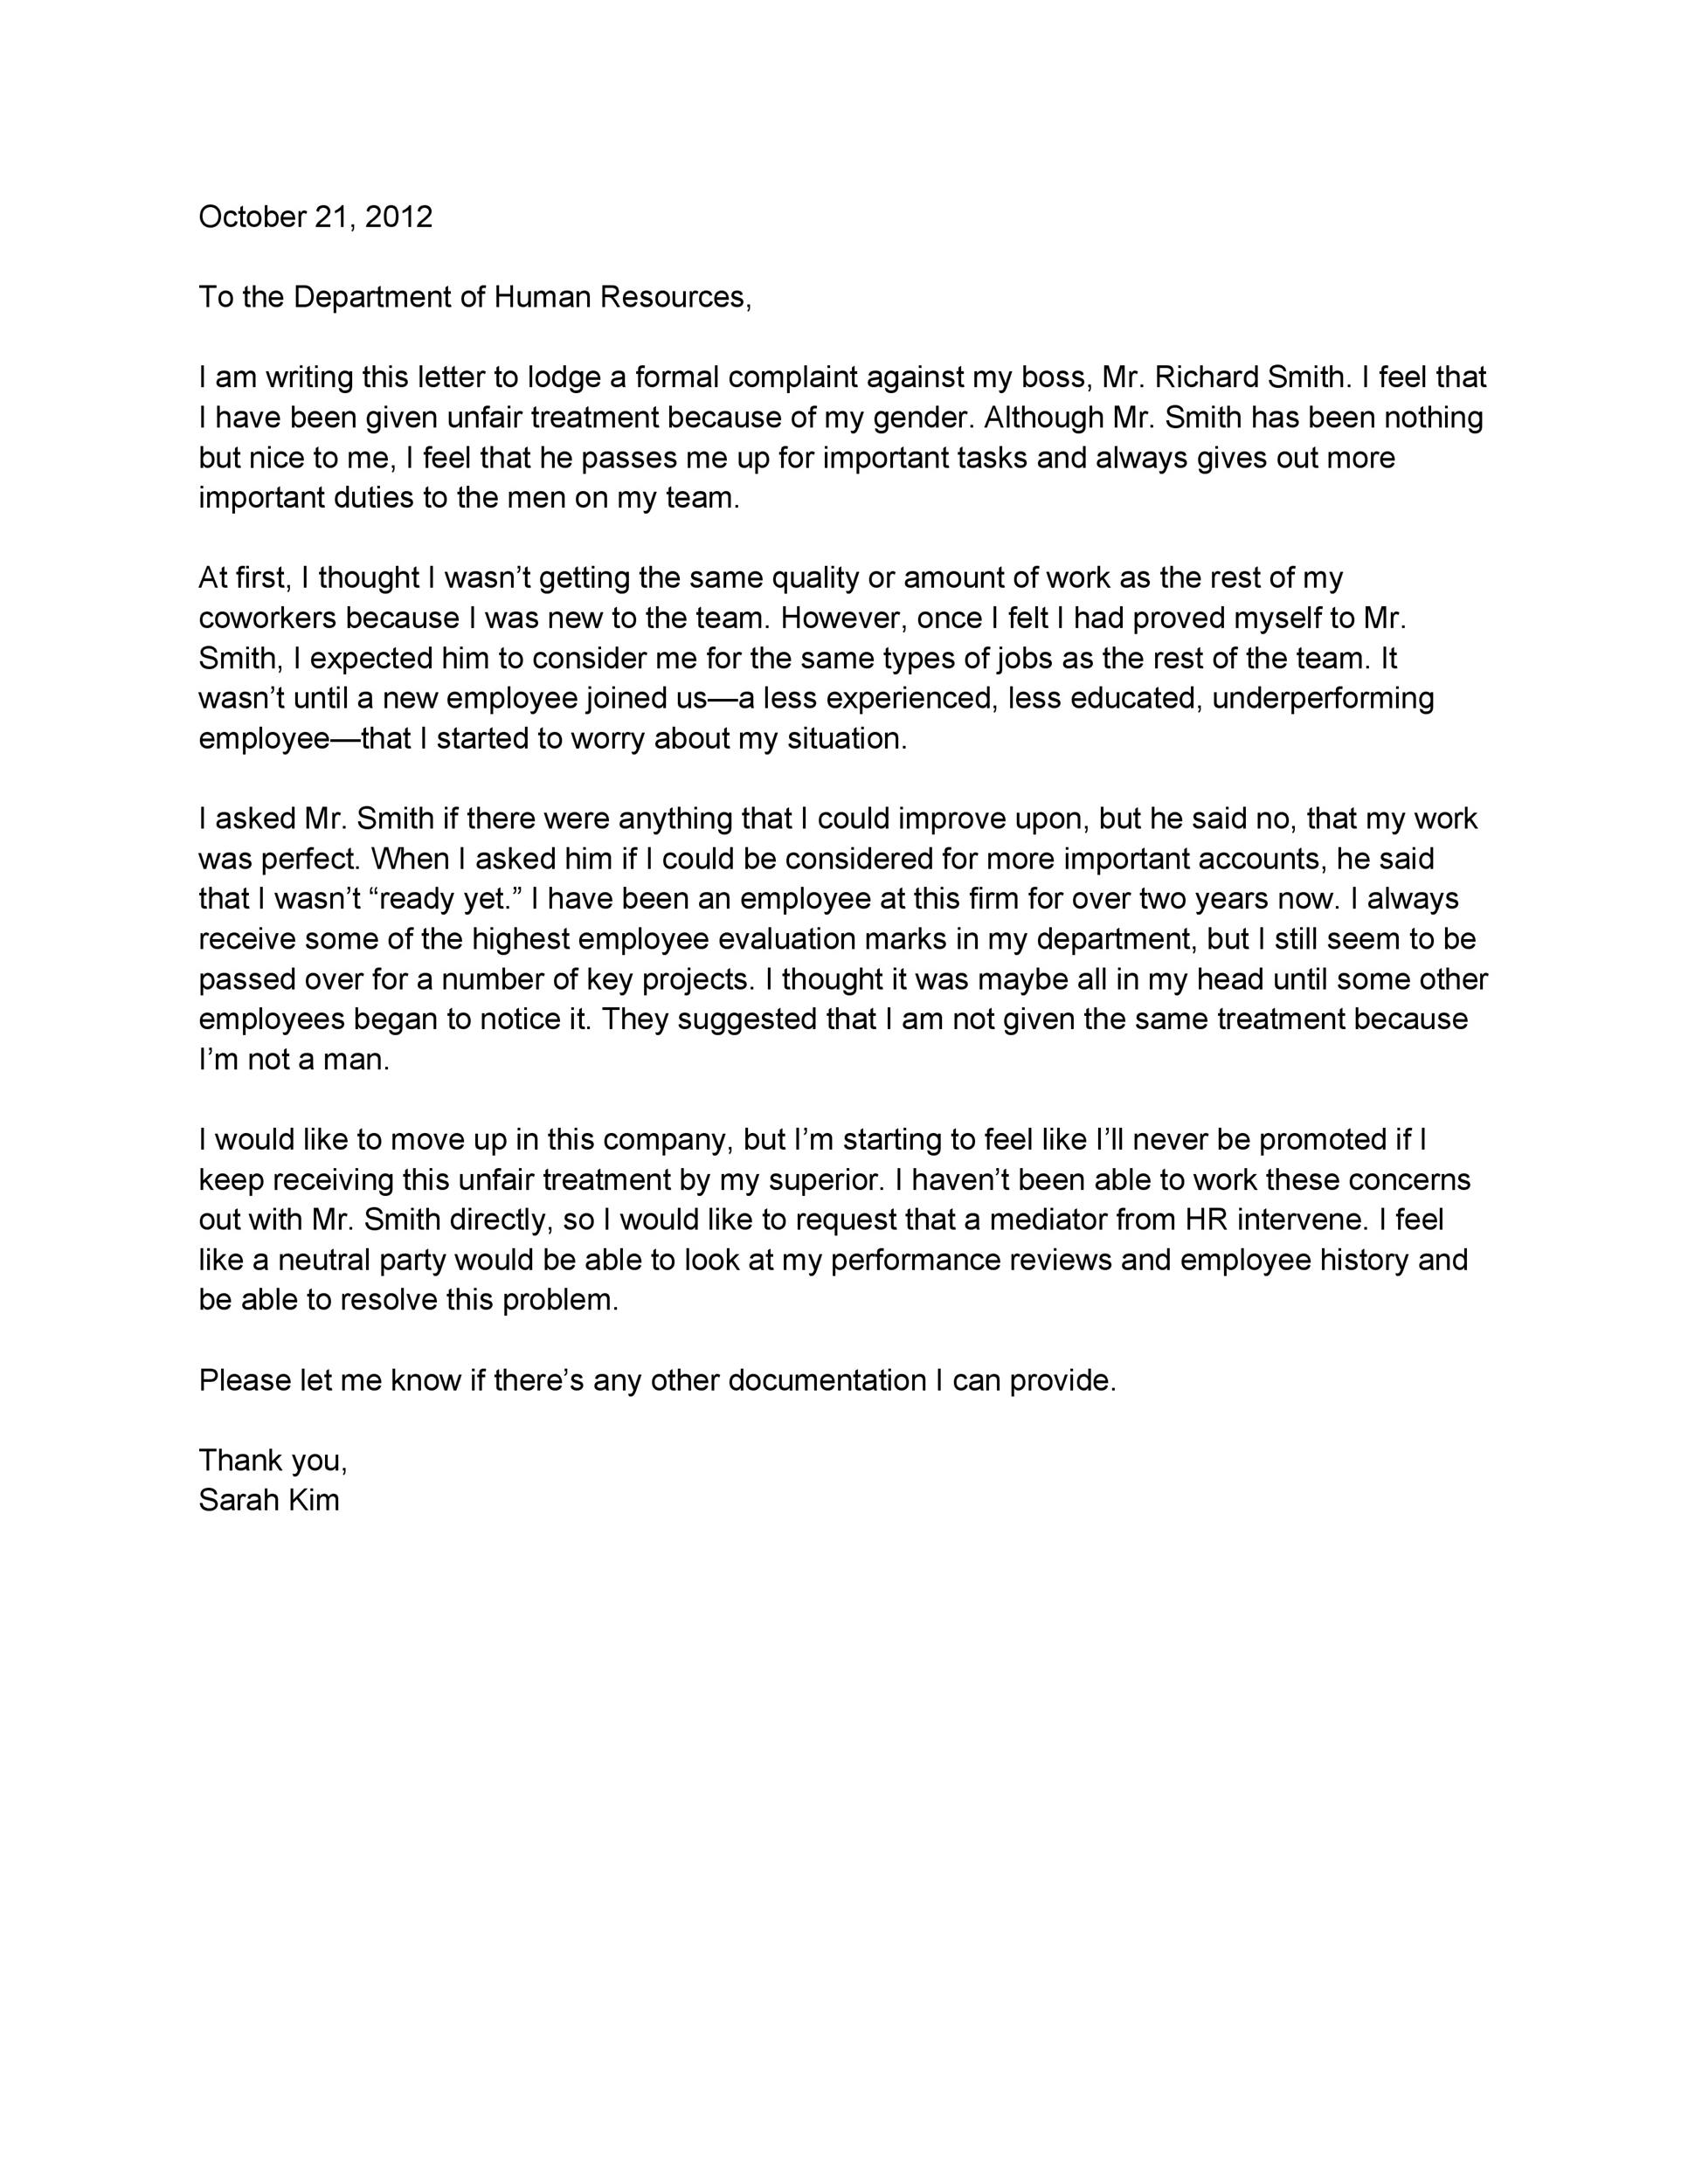 Free grievance letter 15